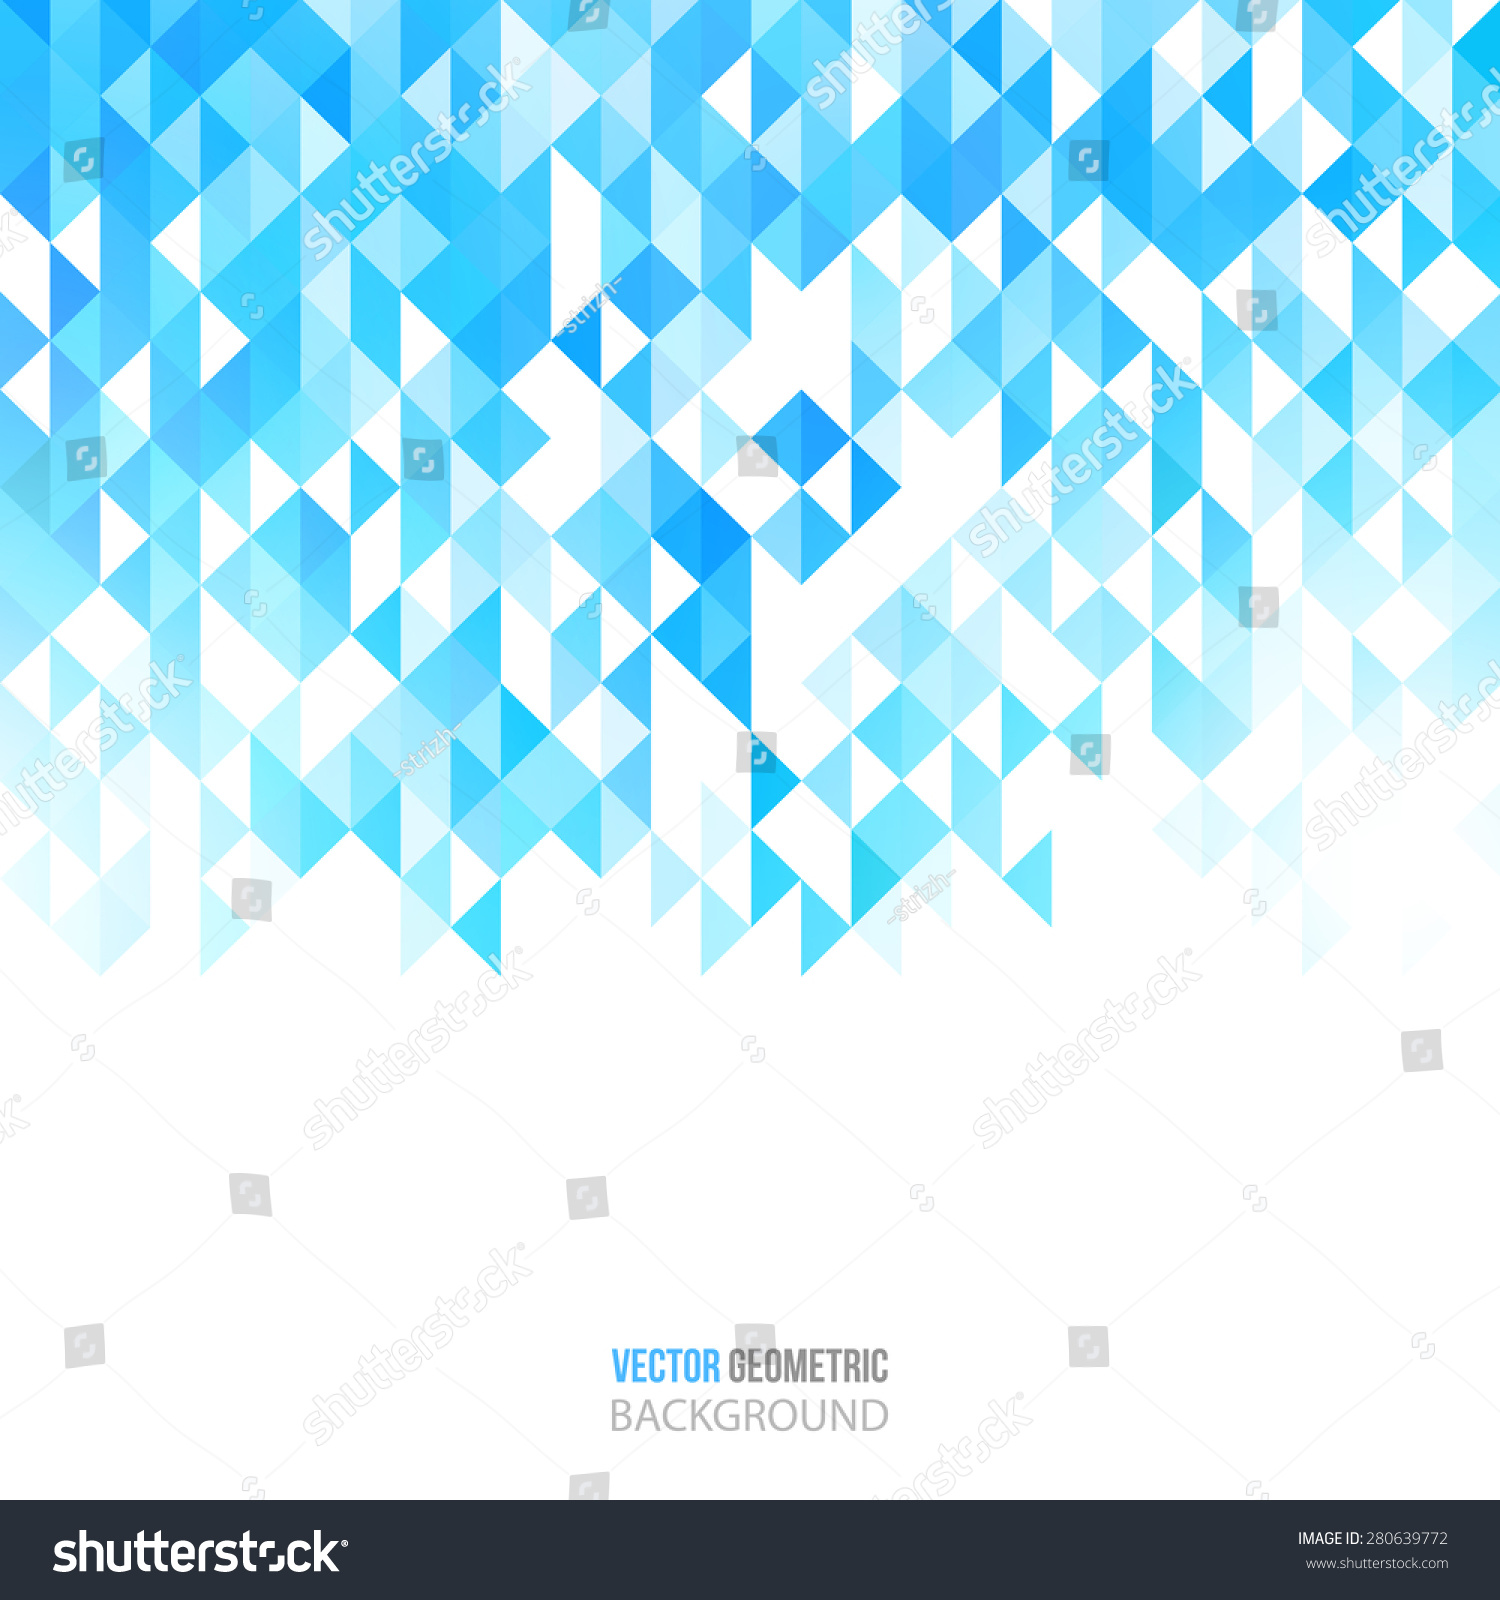 stock vector geometric background - photo #41